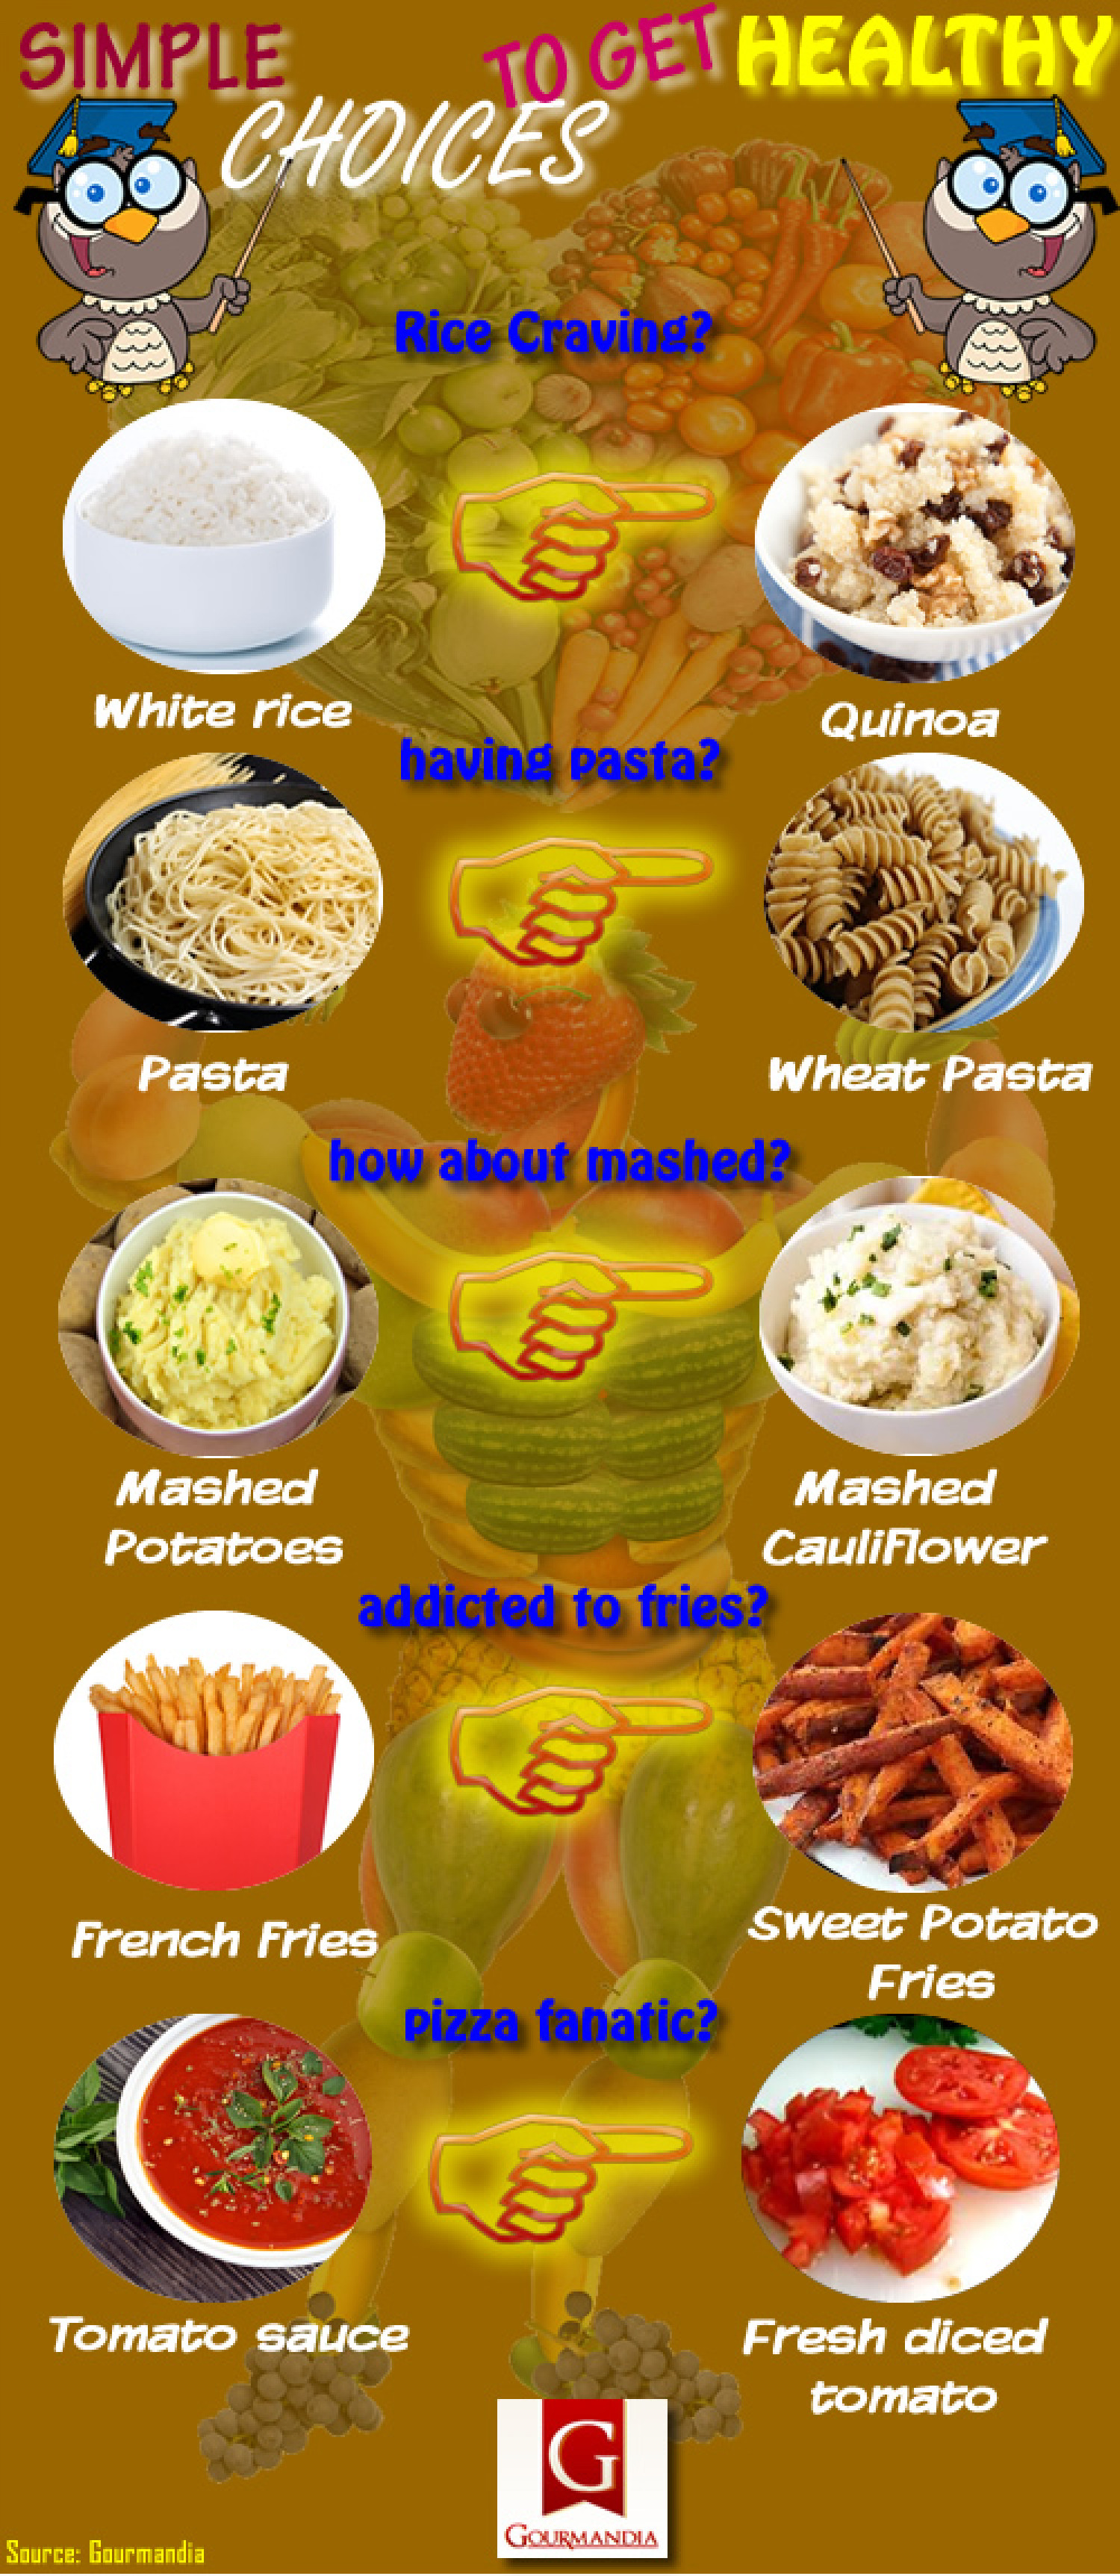 Food Choices to Get Healthy Infographic